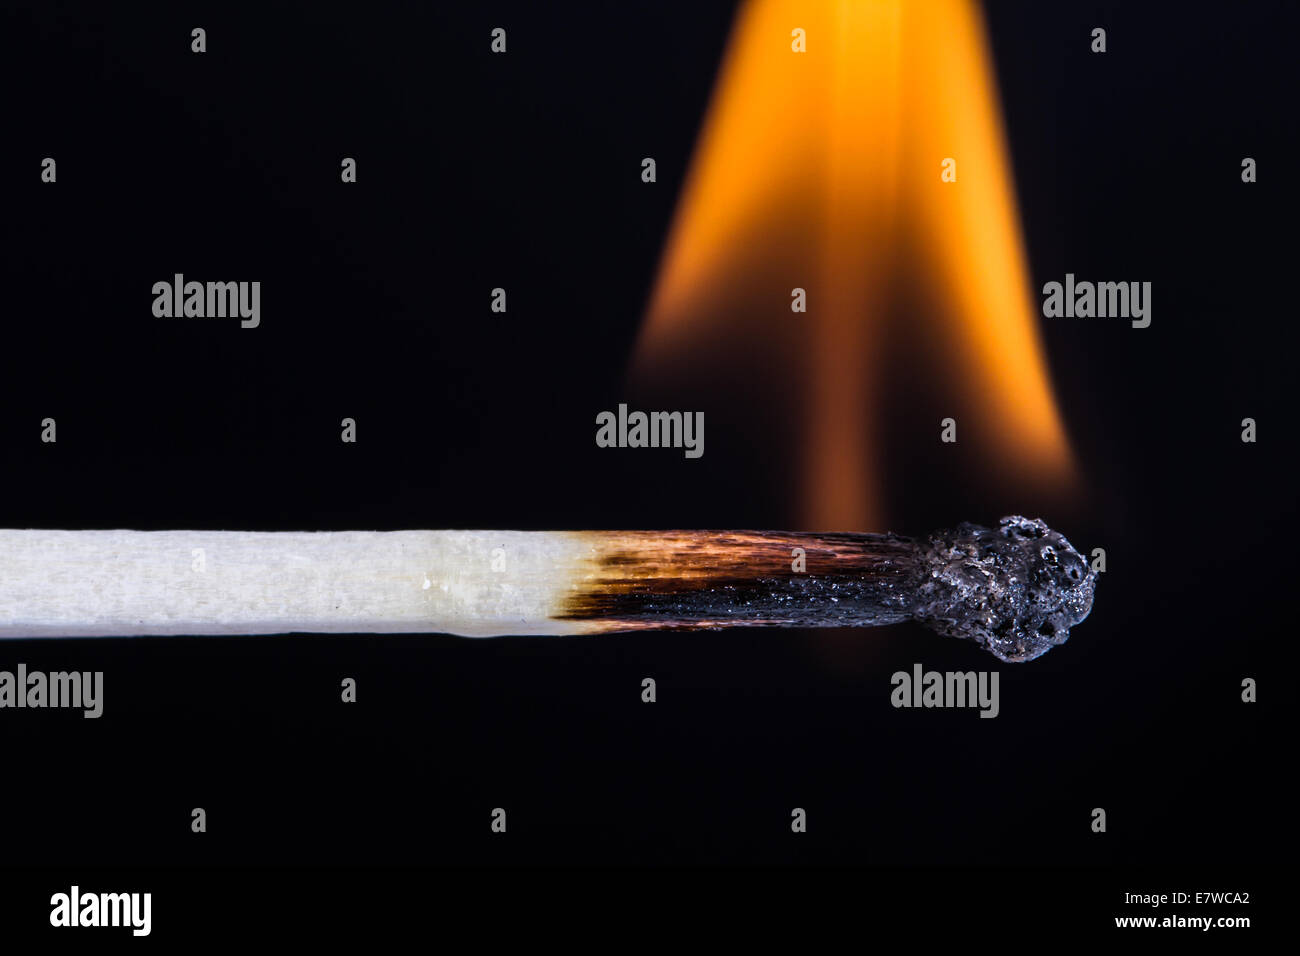 Close up of burning, flaming match on fire against black background. - Stock Image